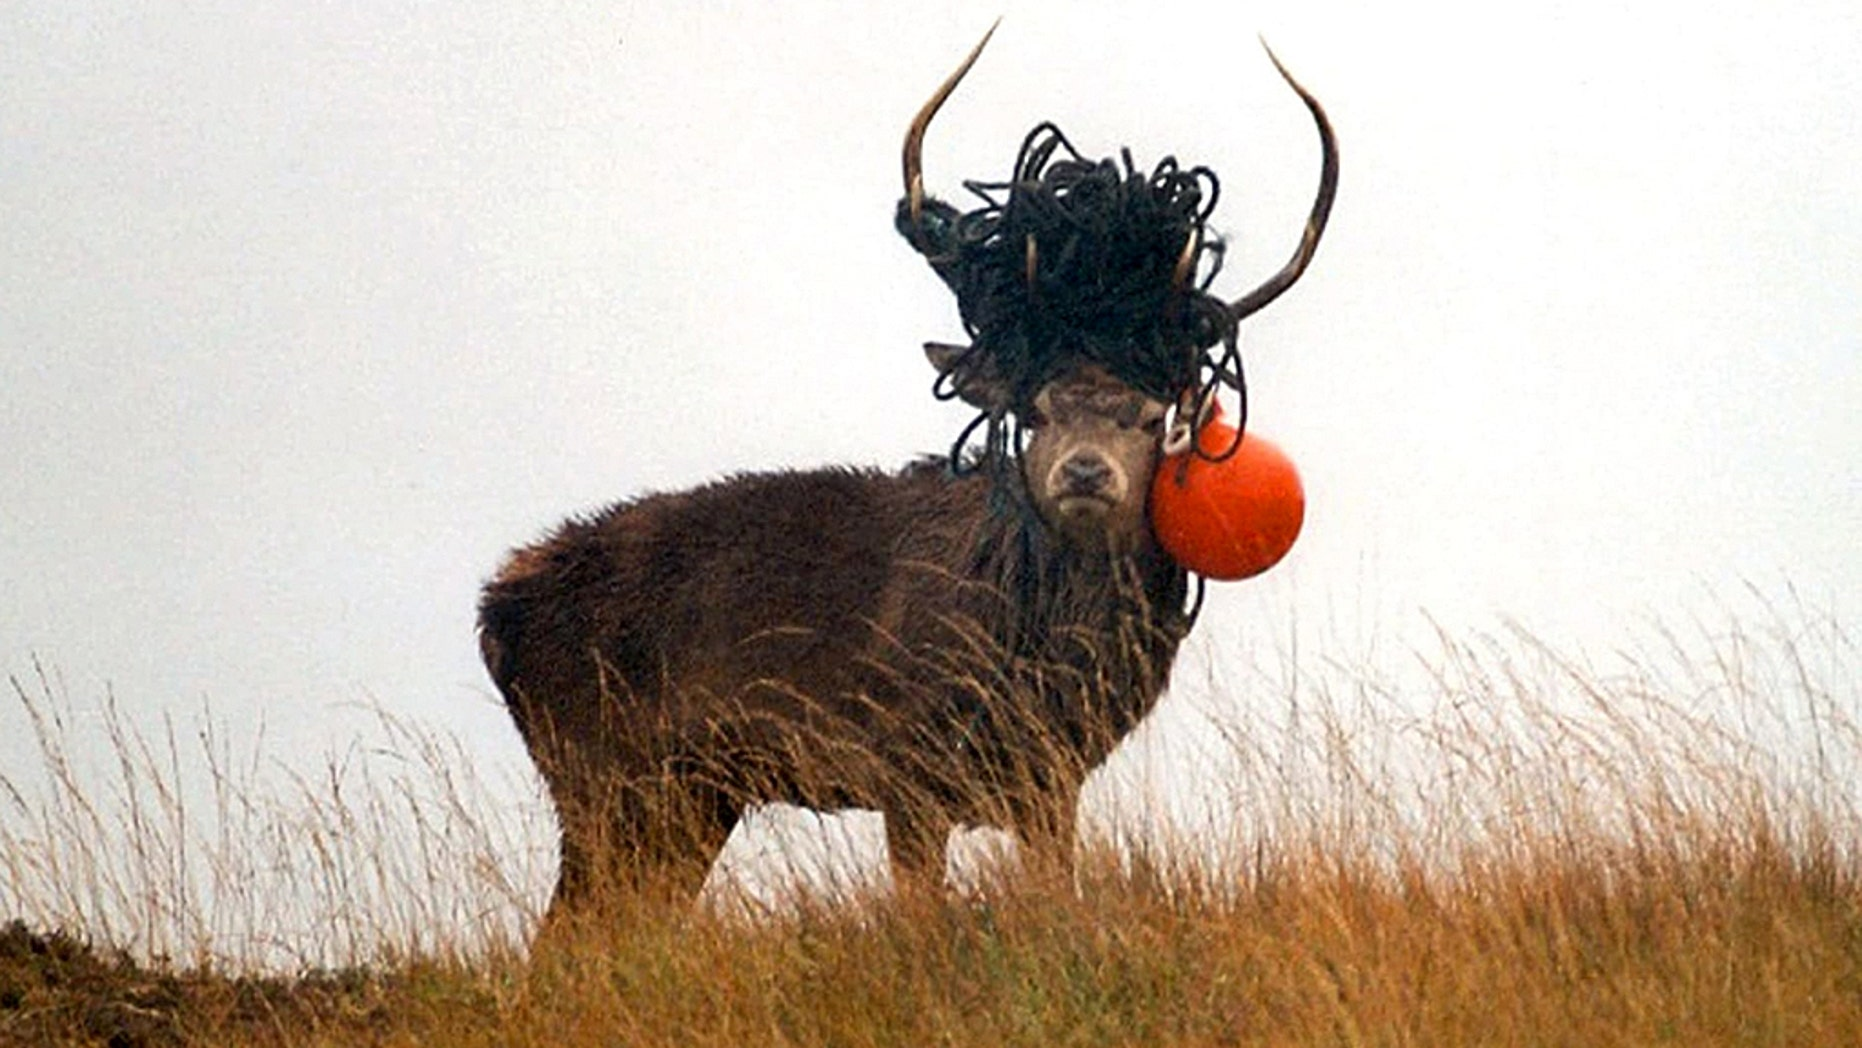 The Scottish National Heritage released the photos to highlight the troubling effects of pollution on wildlife.